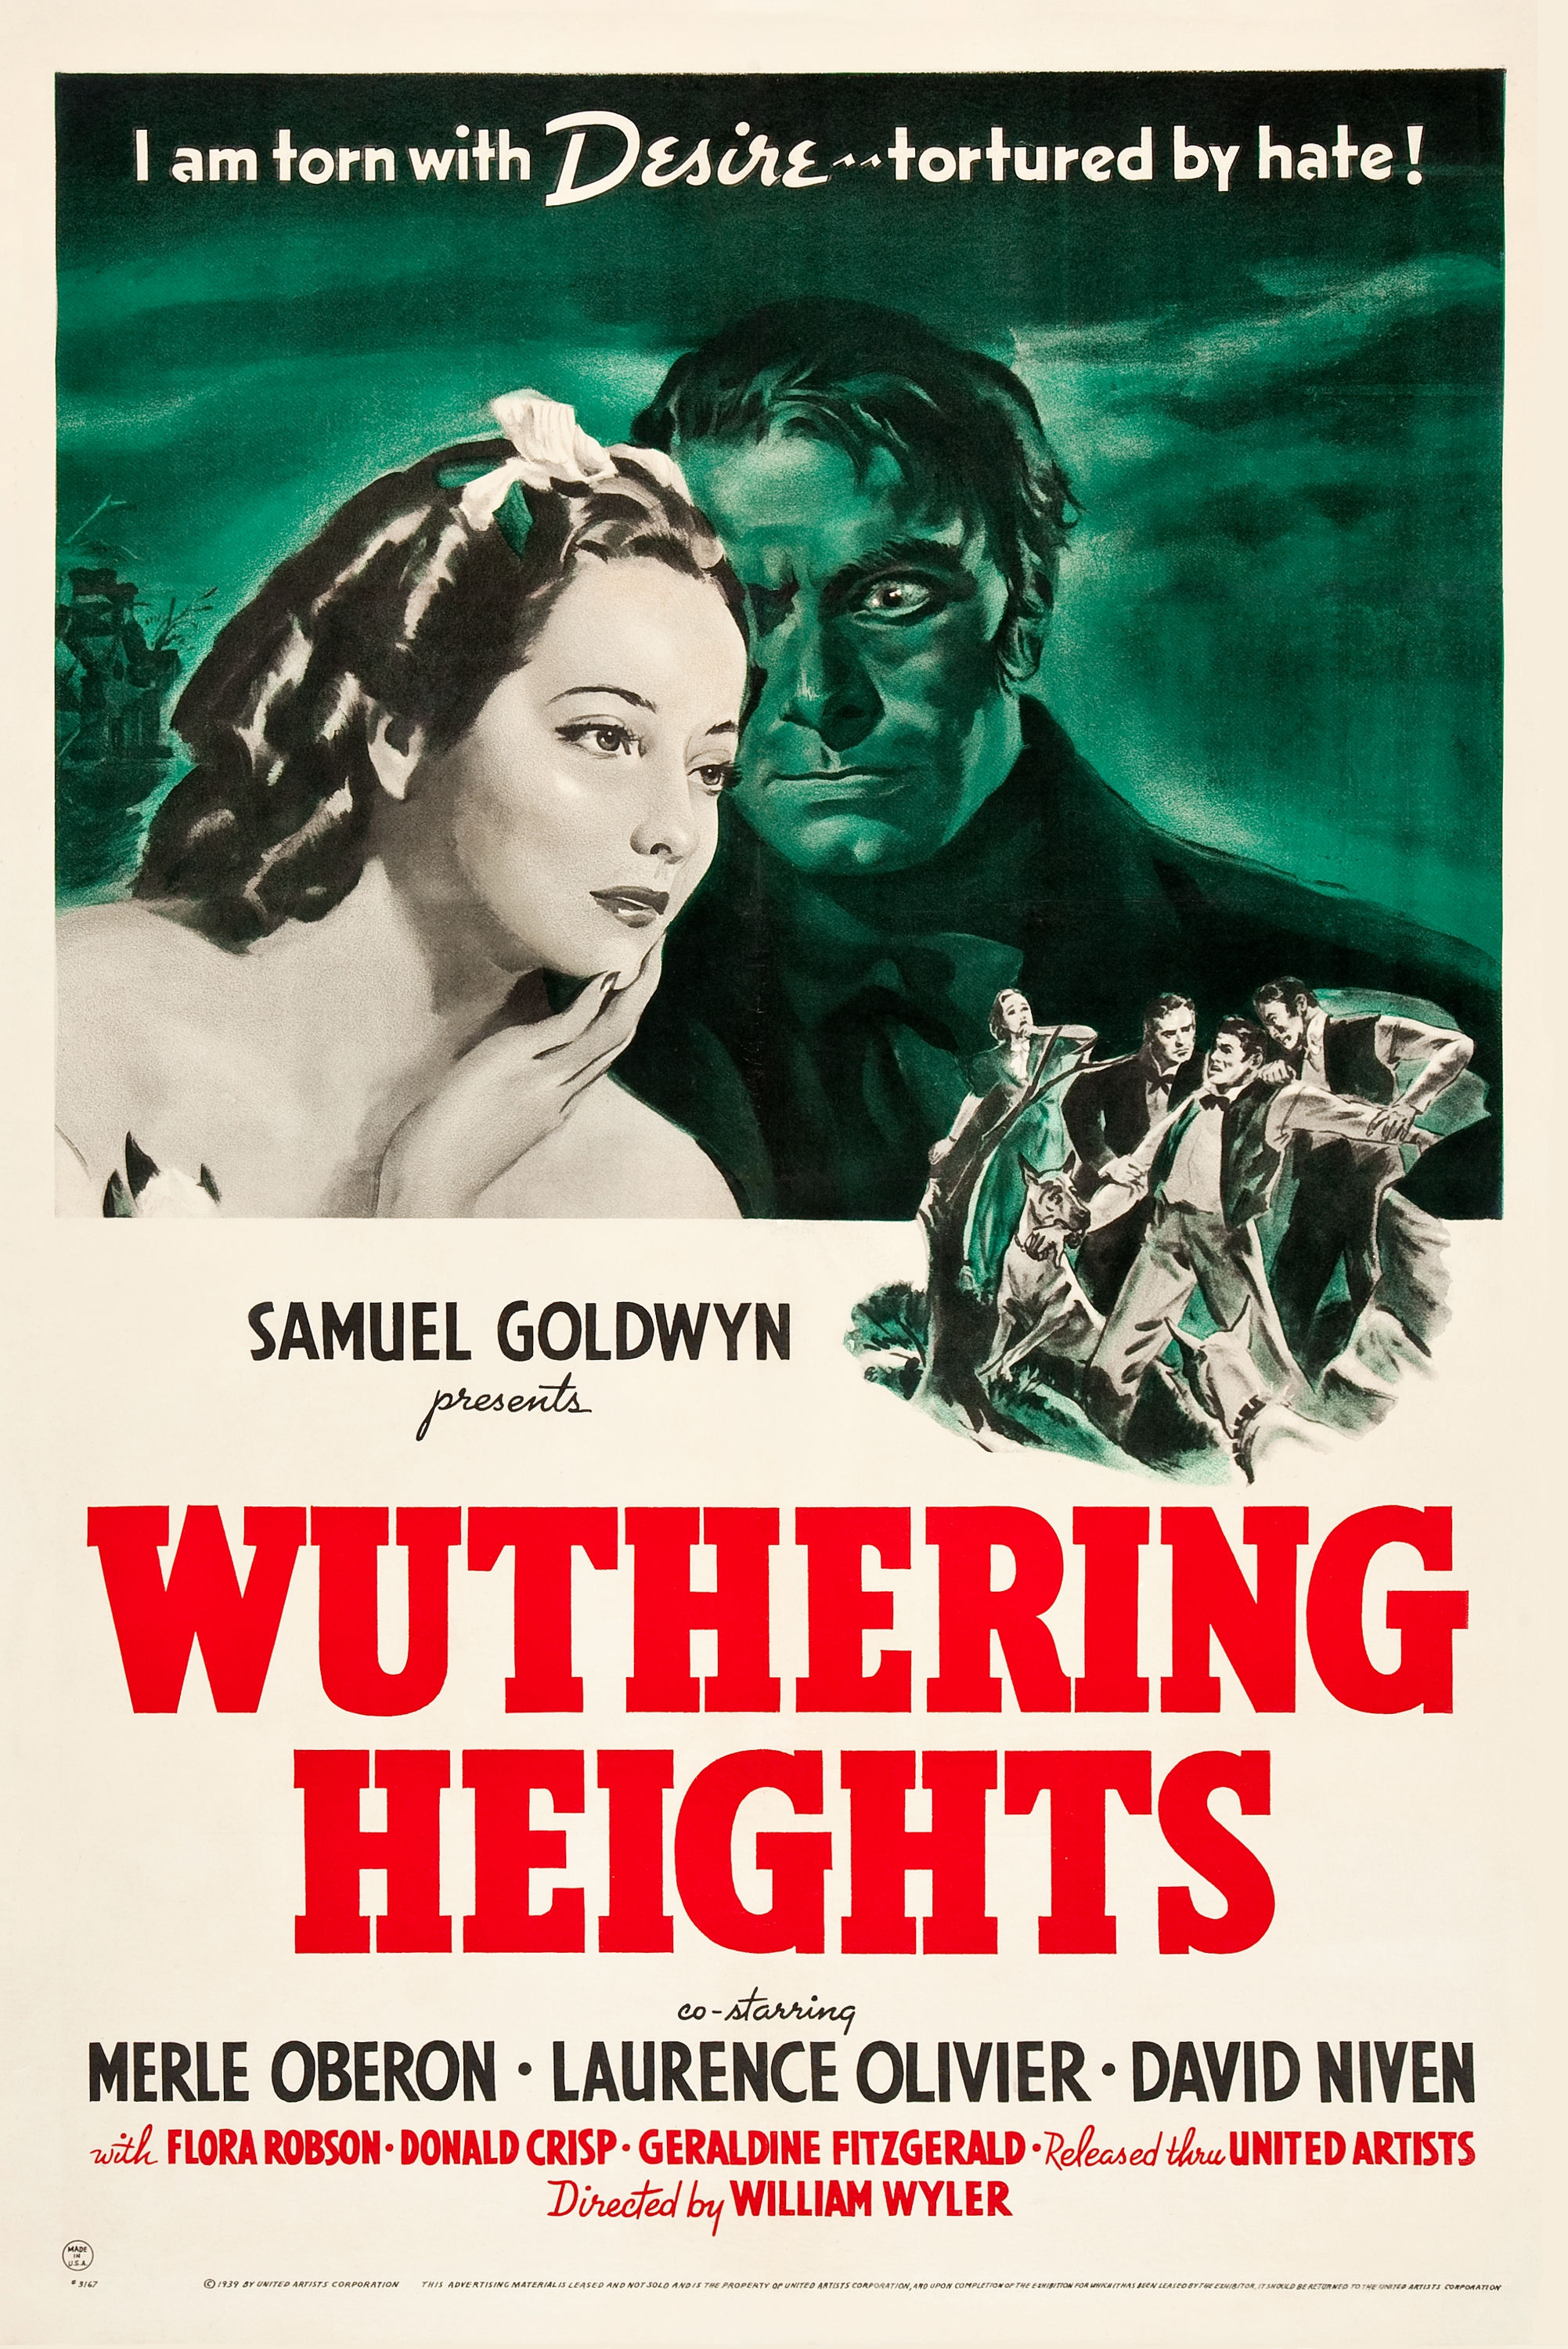 wuthering heights movie discussion Wuthering heights (1939) is director william wyler's somber tale of doomed and tragic love, conflicting passions, and revenge it is considered one of hollywood's all-time most romantic/drama classics filmed with haunting beauty, it is the first film dramatization of emily bronte's wildly passionate 1847 best-selling literary.